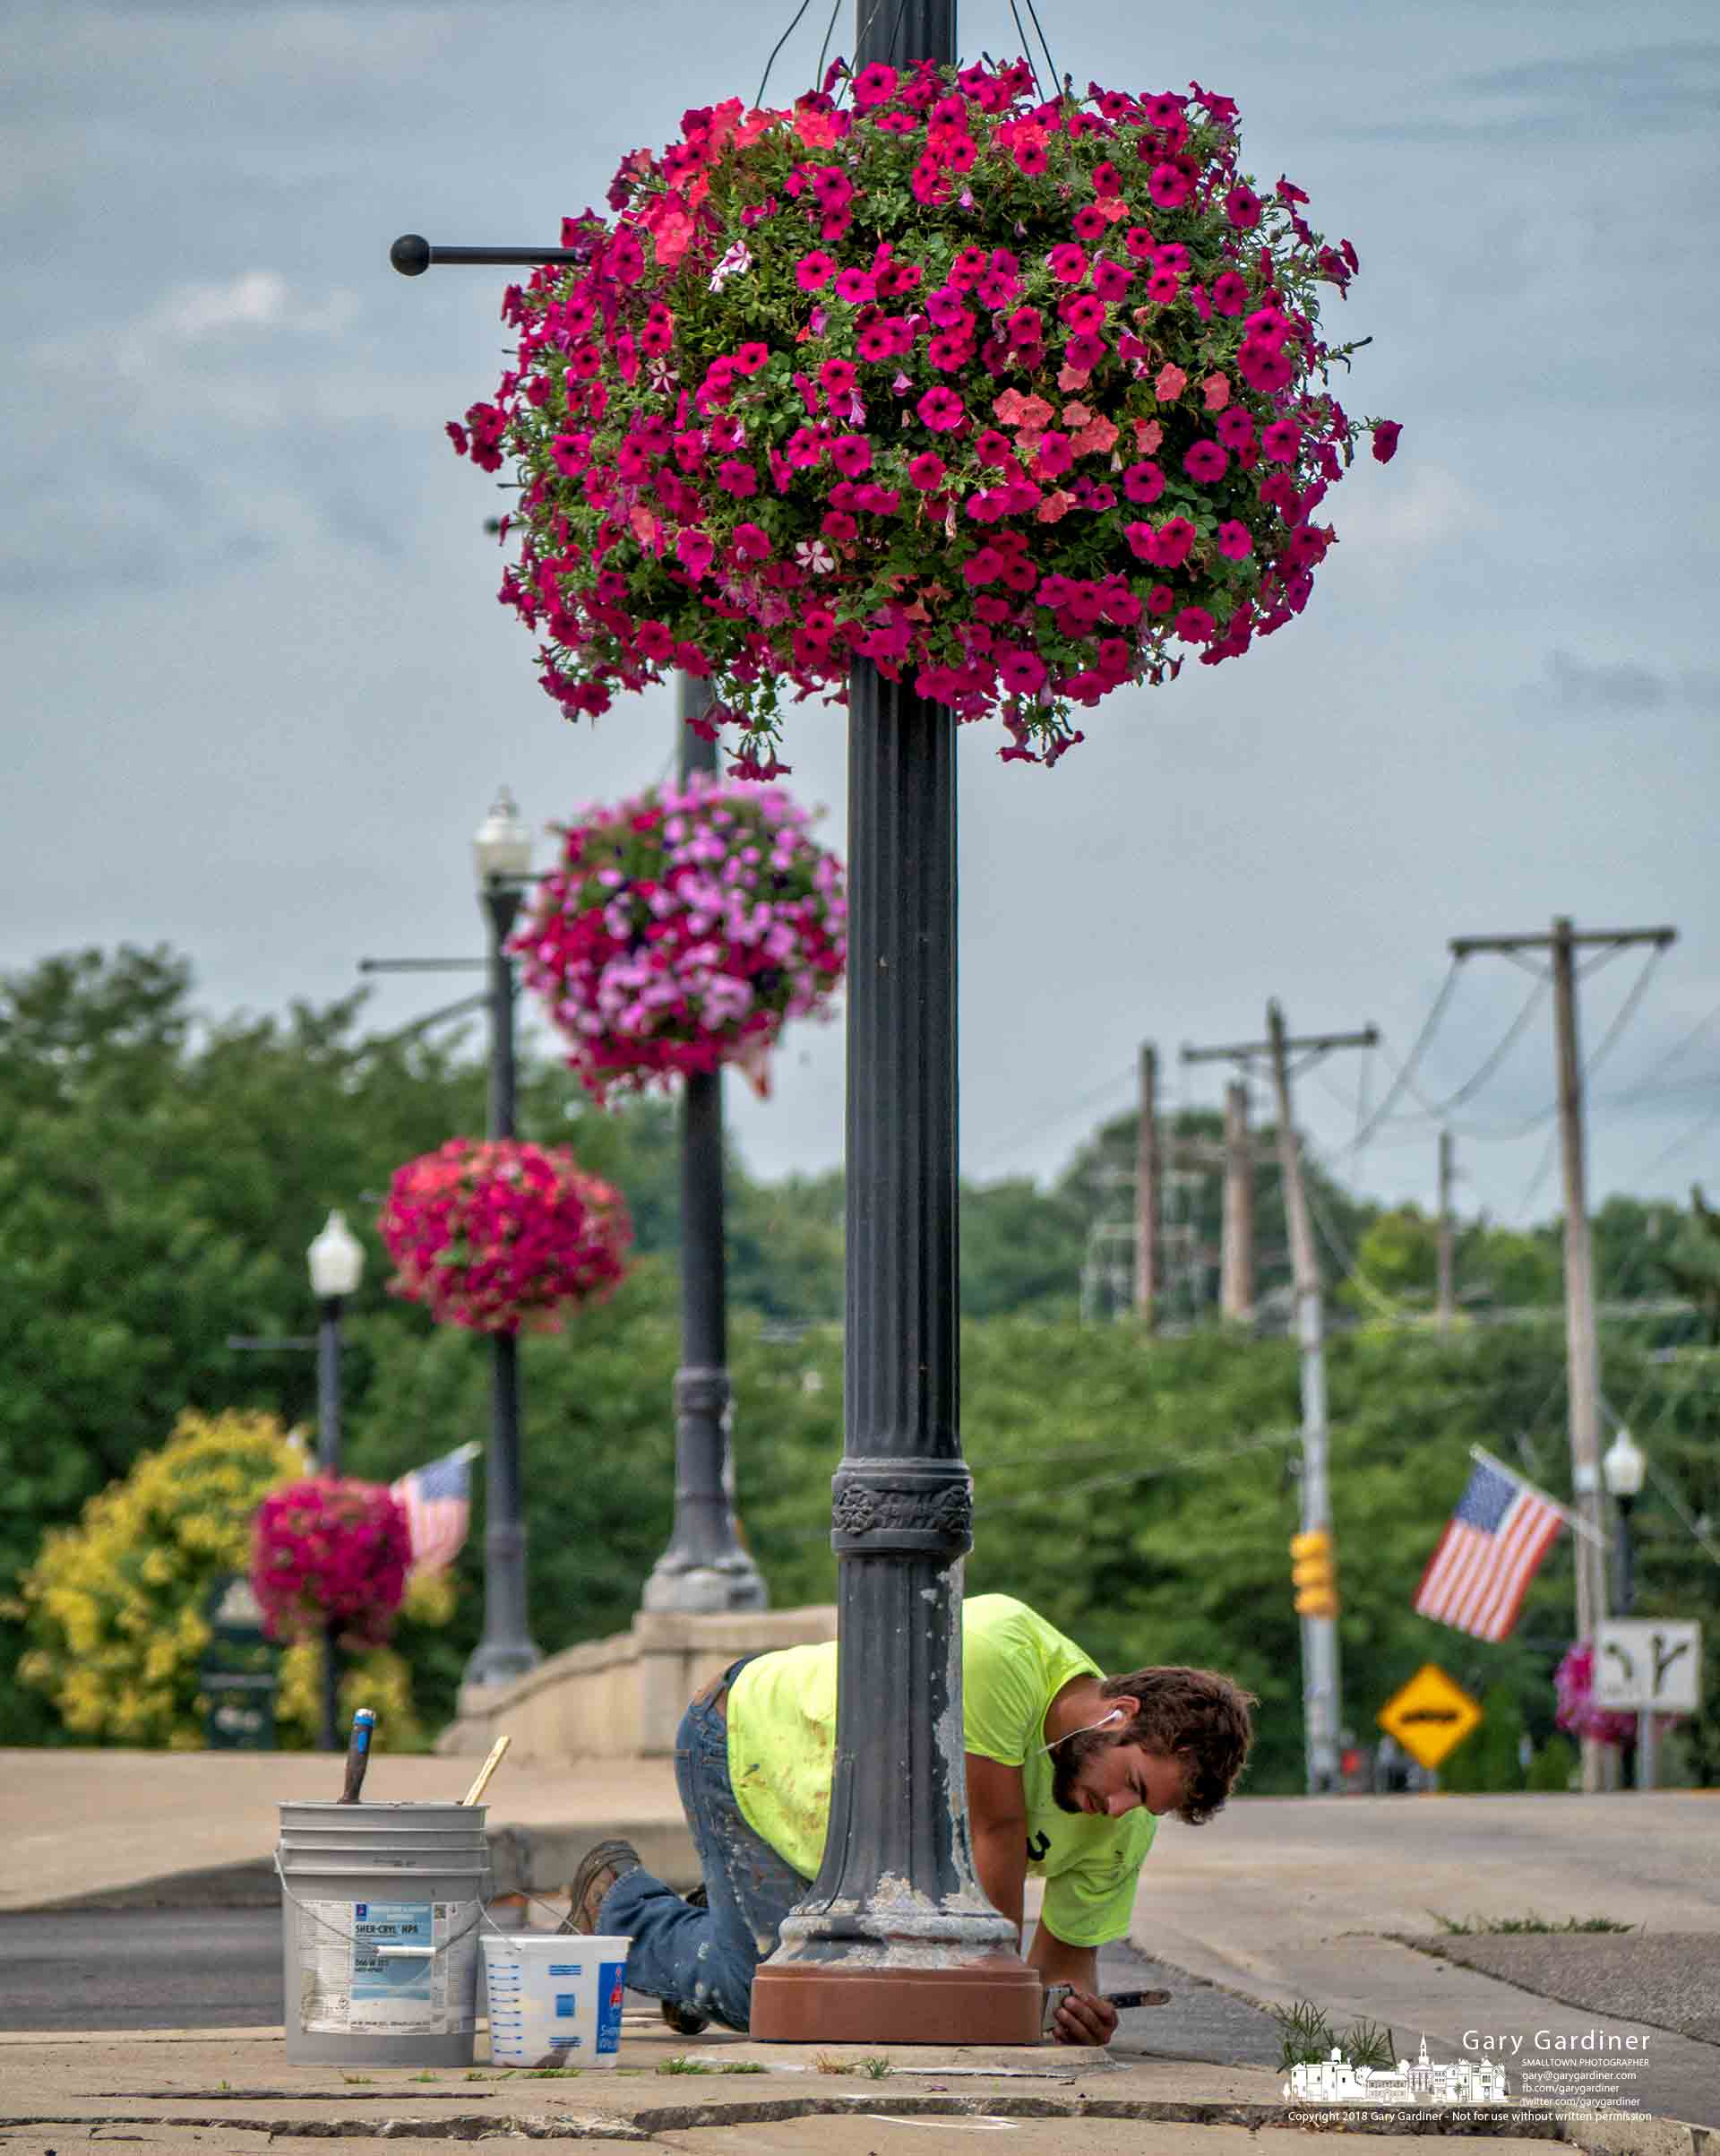 A painting contractor applies brown primer to the green light poles along West Main Street before they are painted black as part of the citymaintenanceprogram. My Final Photo for Aug. 7, 2018.